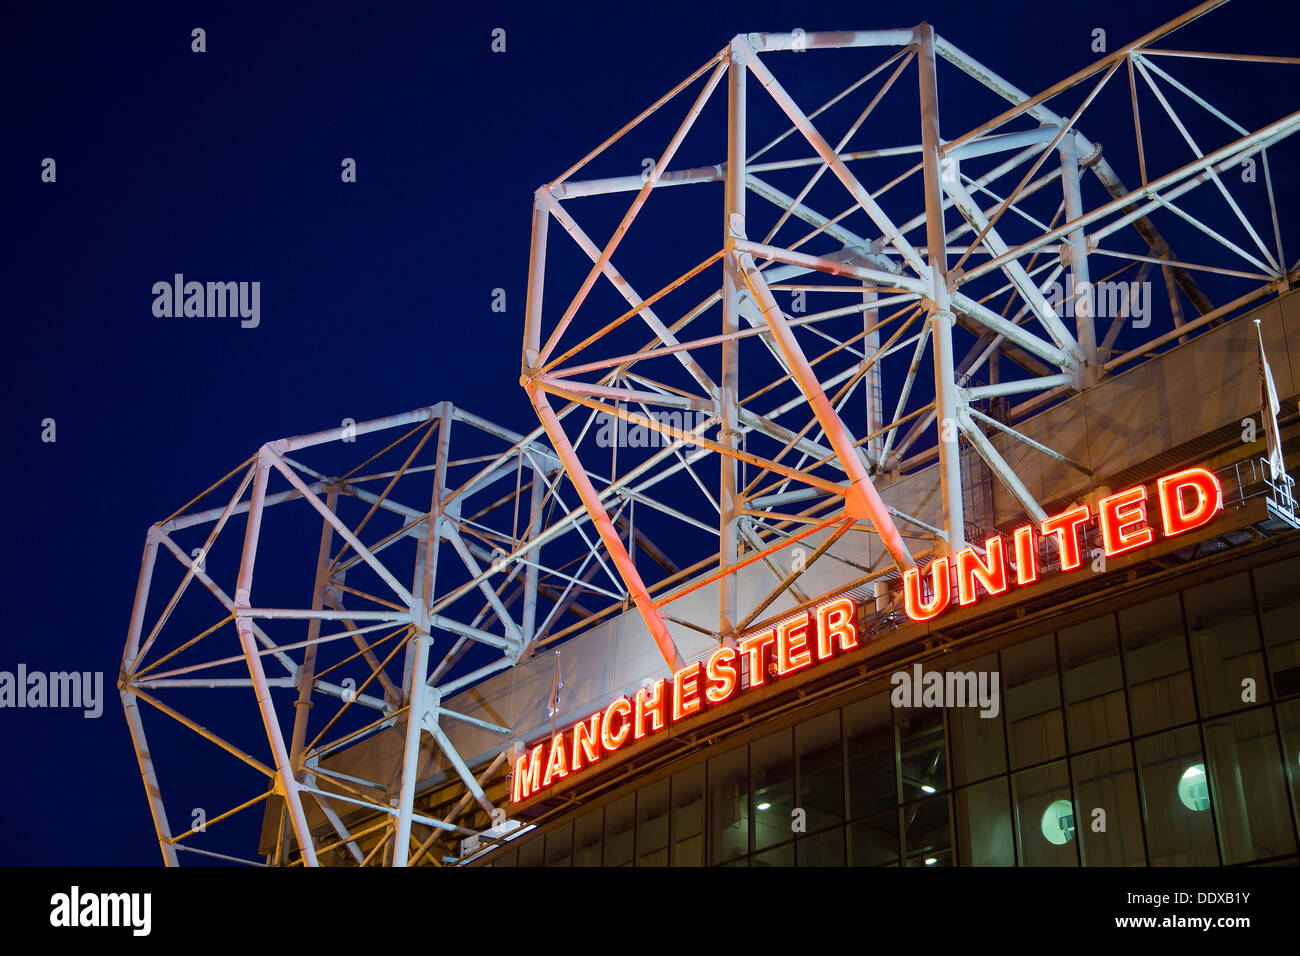 Manchester United's football stadium, Old Trafford, at night - Stock Image